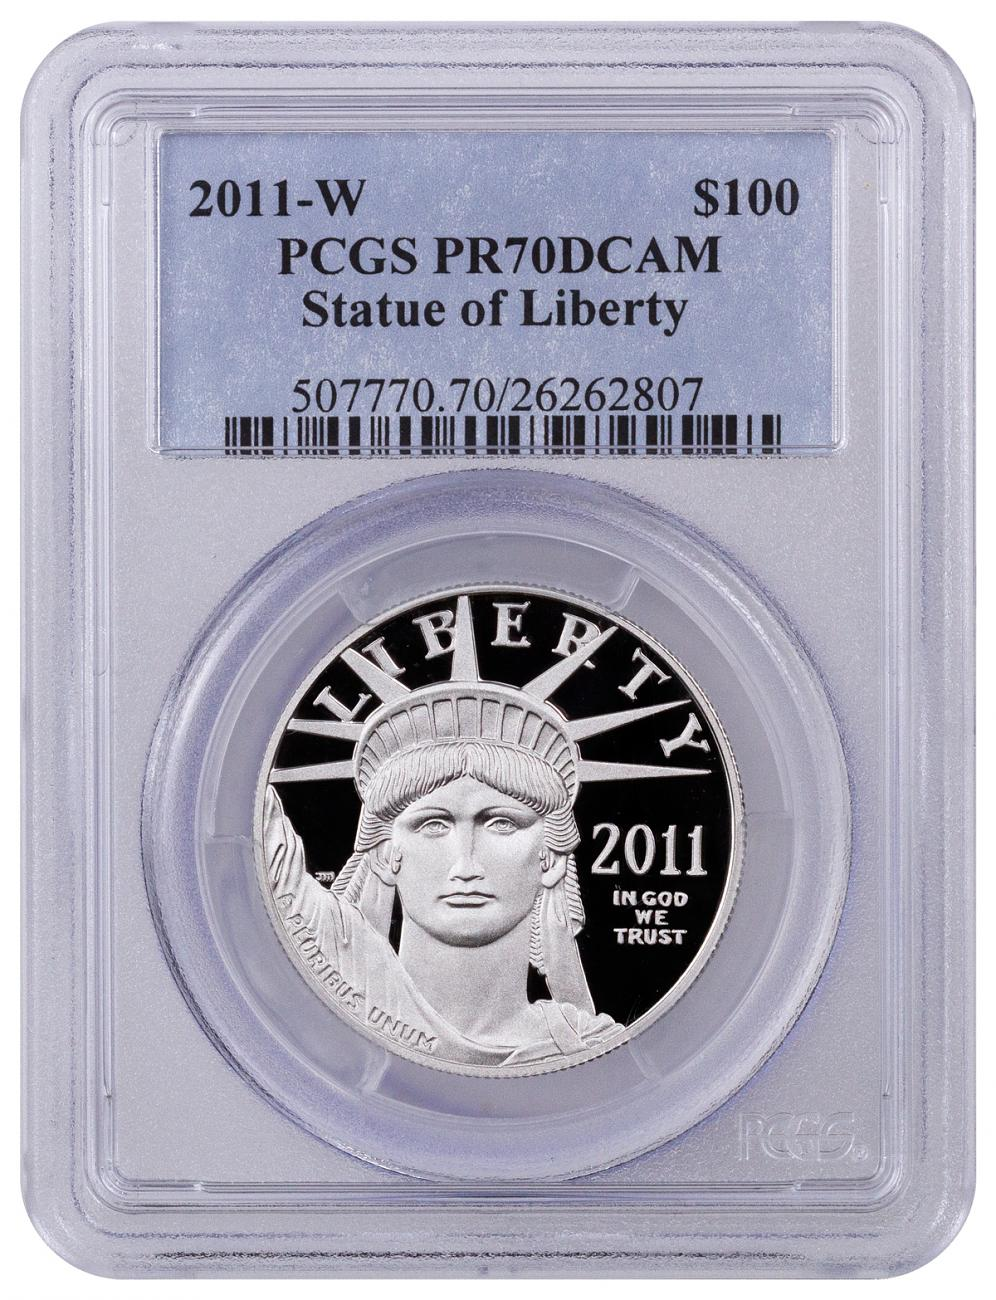 2011-W 1 oz Platinum American Eagle Proof $100 PCGS PR70 DCAM